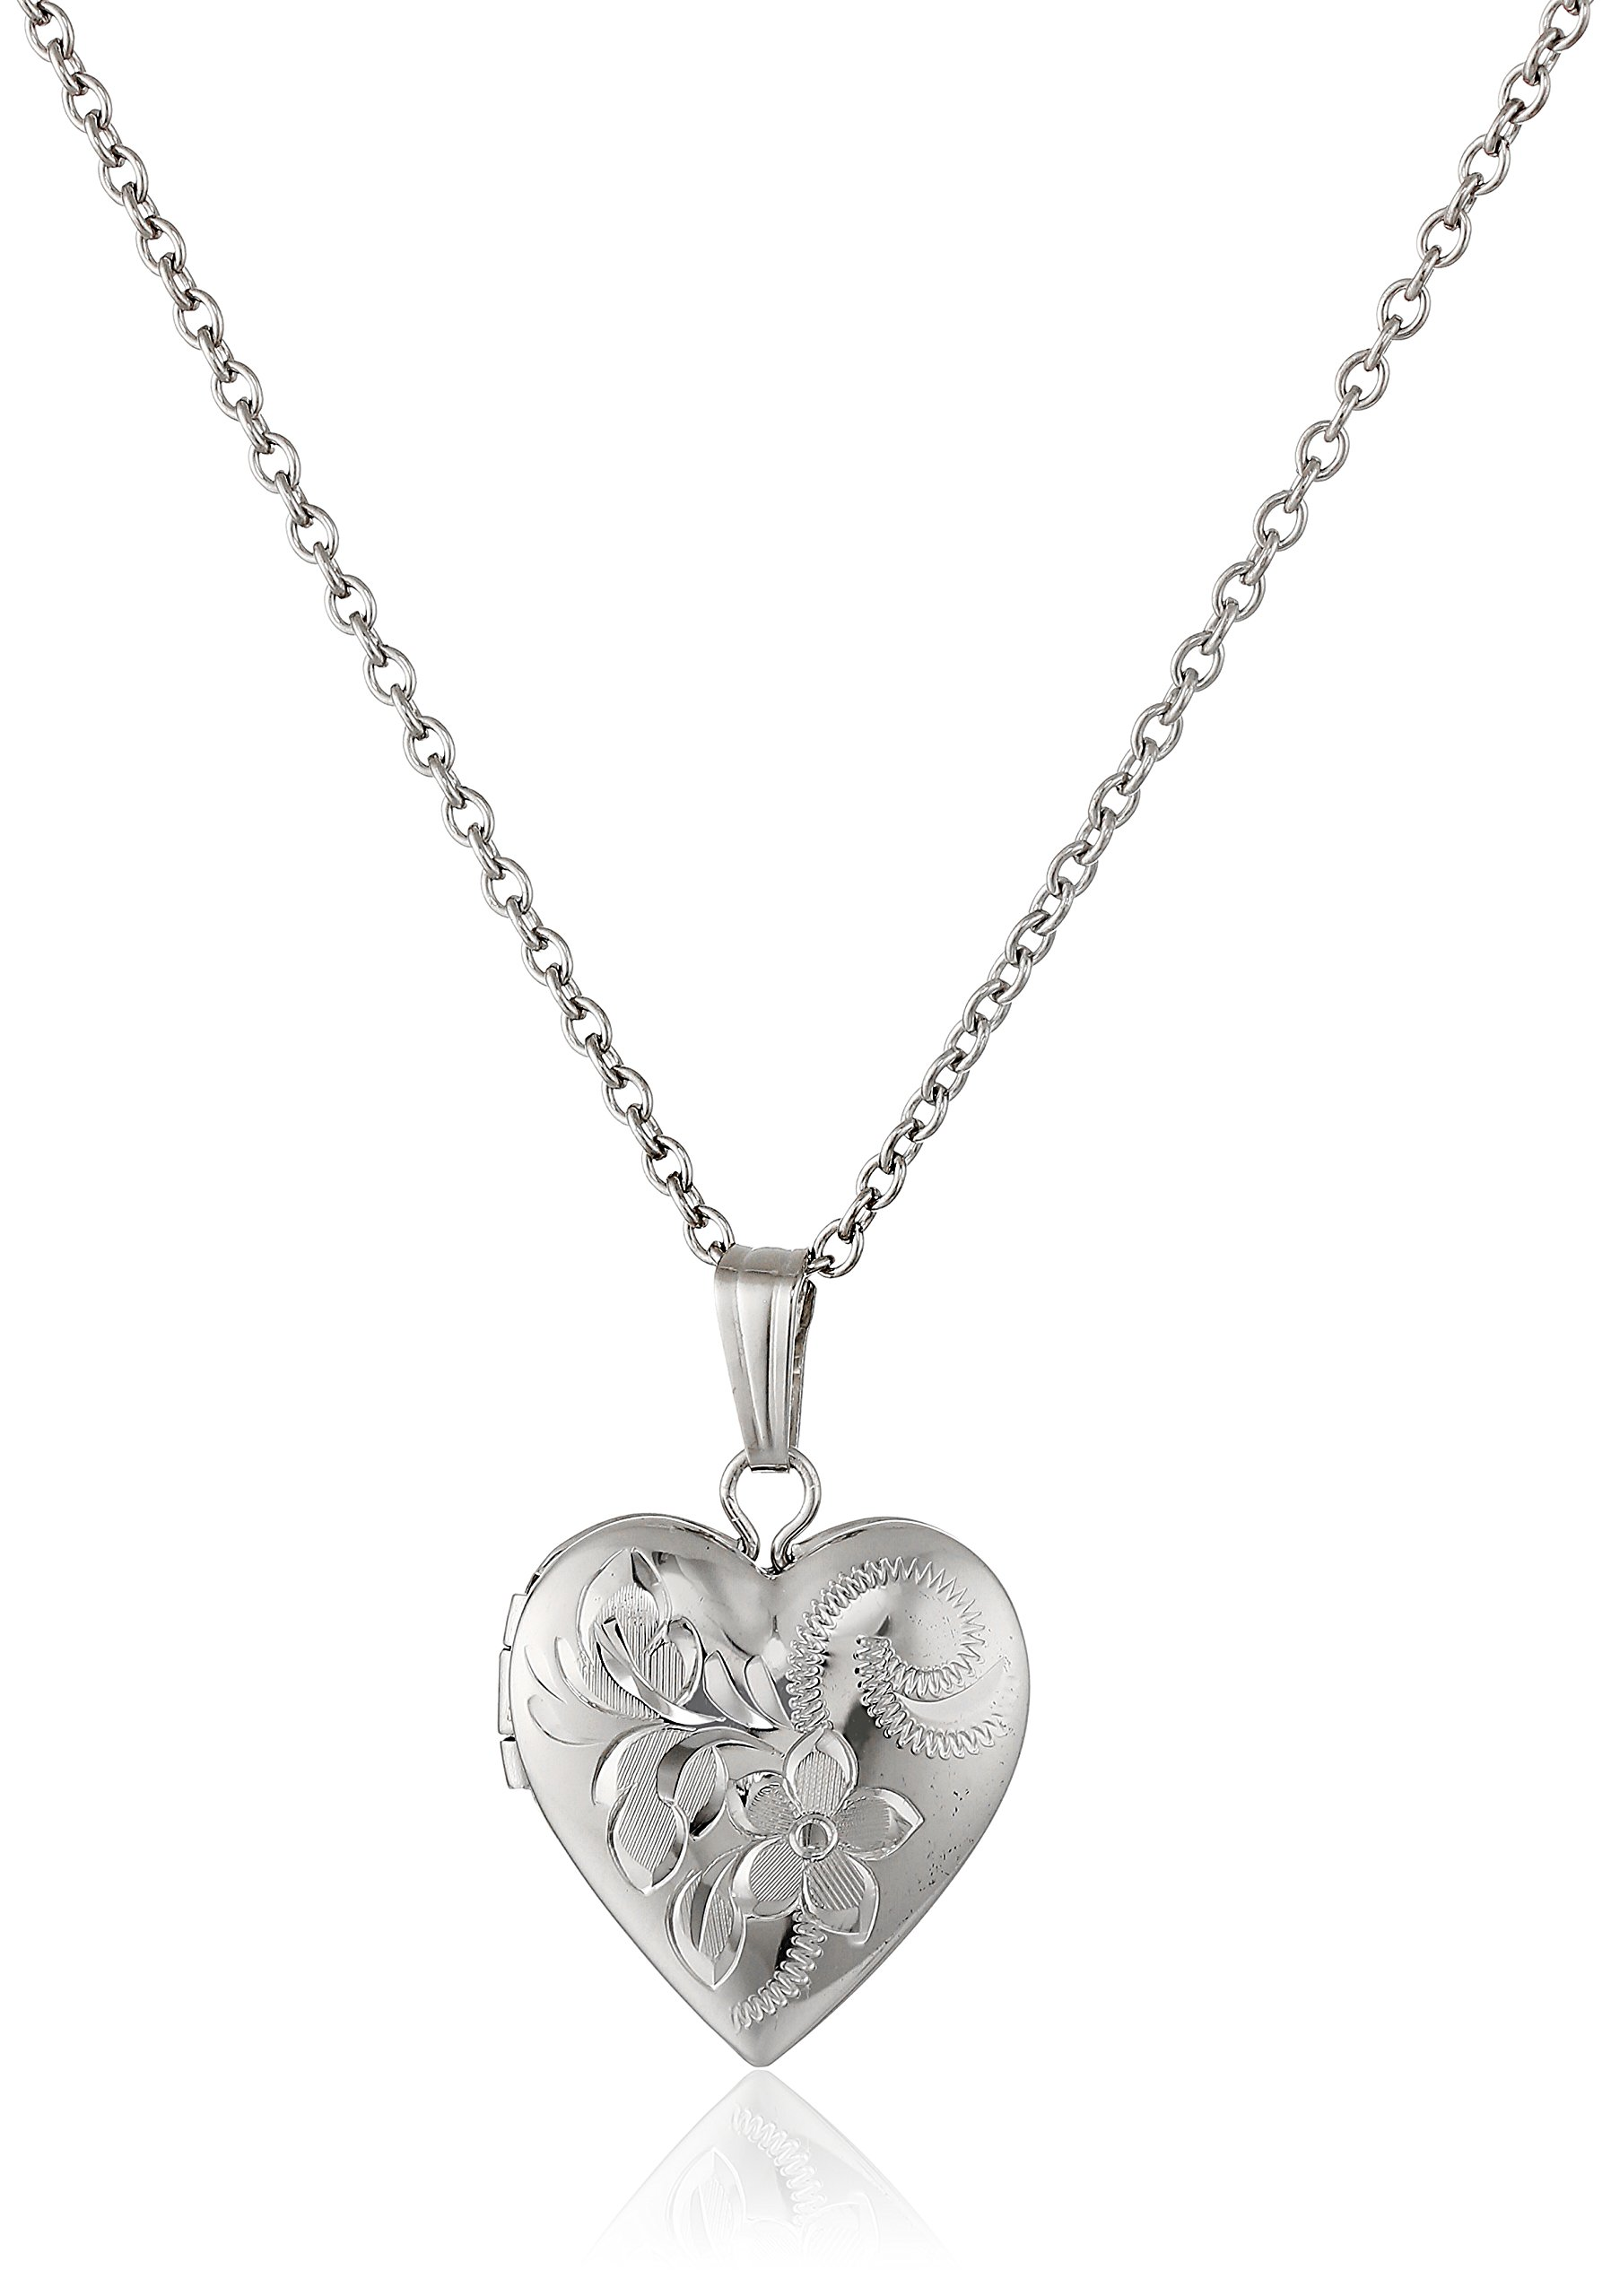 Children's Sterling Silver Hand-Engraved Heart Locket Necklace, 15''